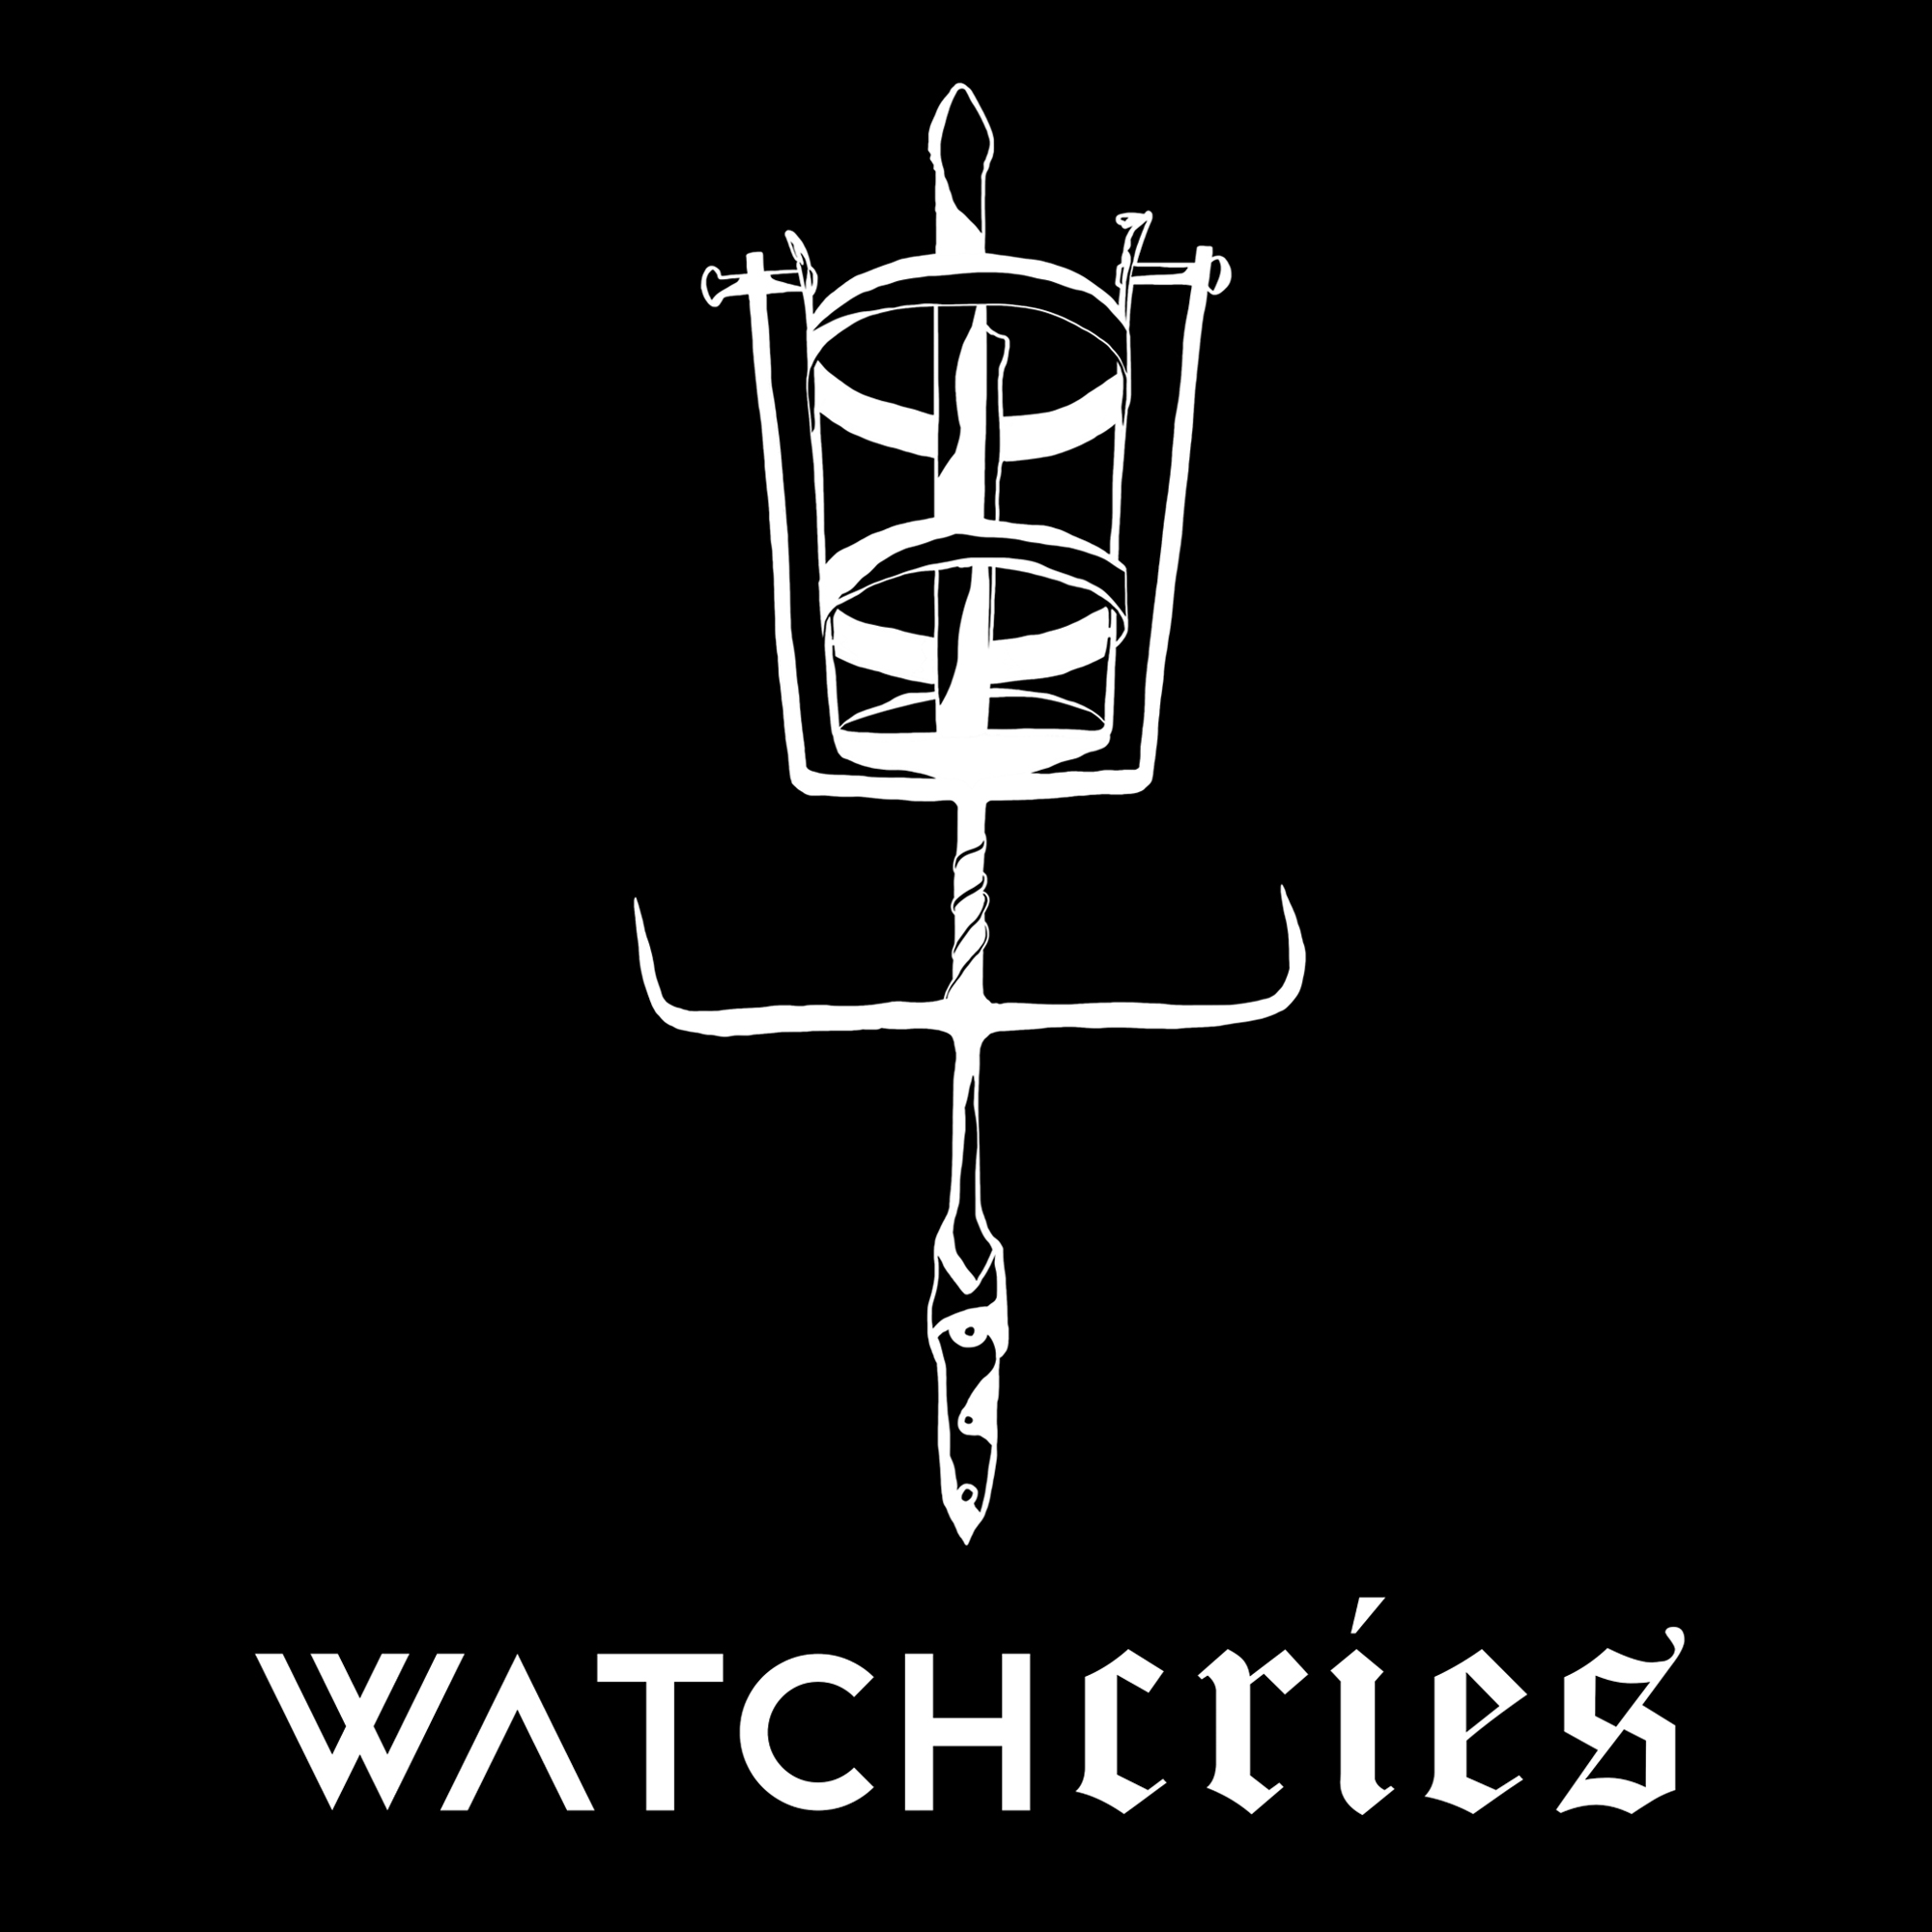 Watchcries - S/T